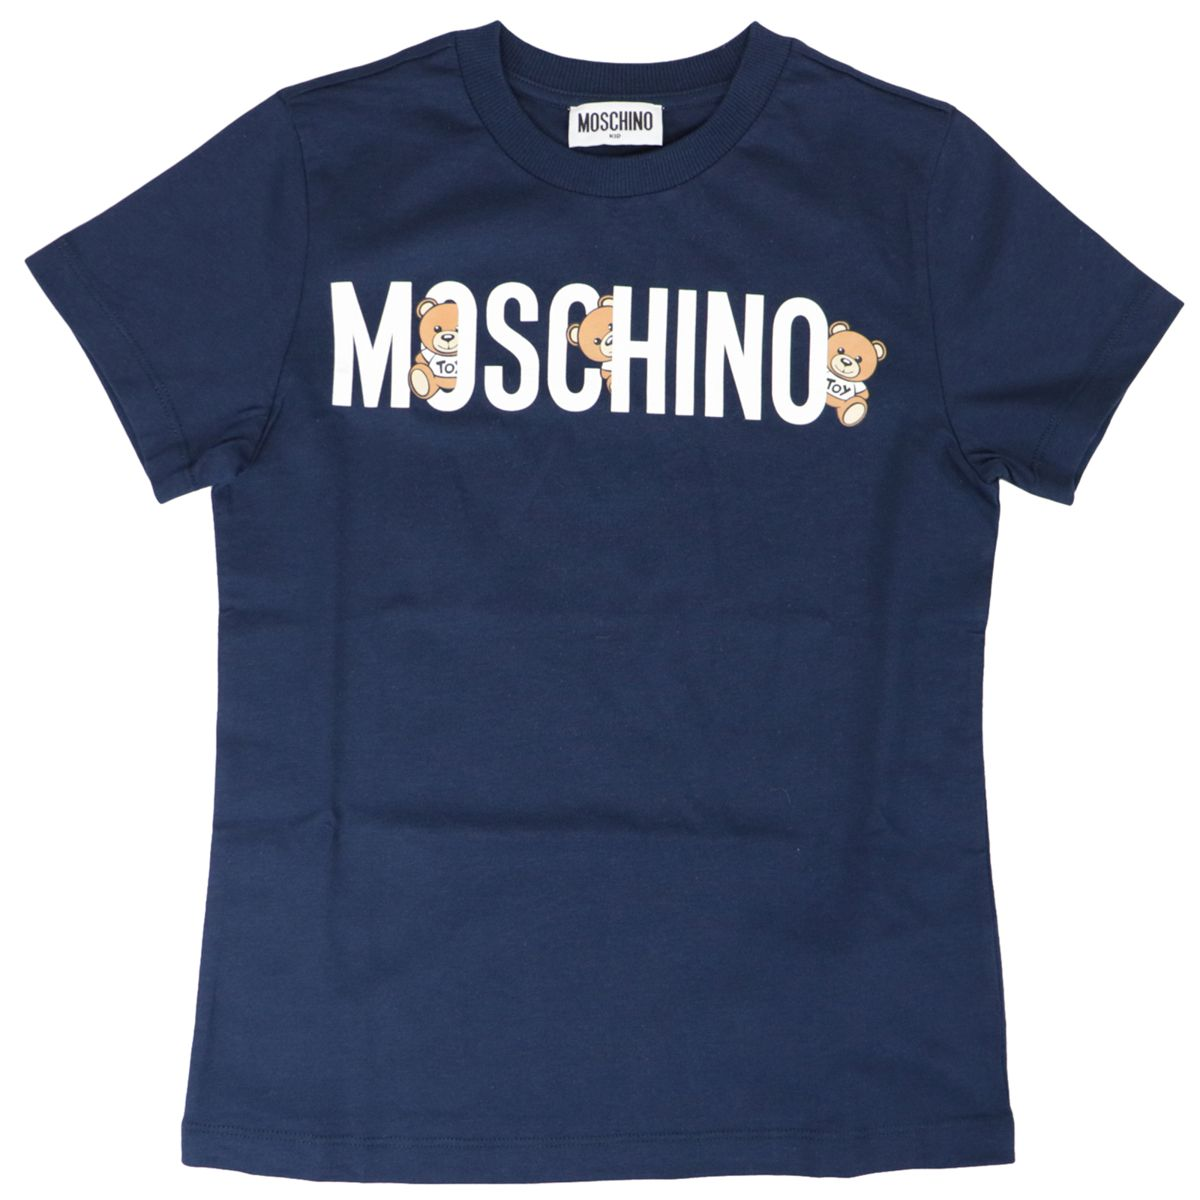 Cotton t-shirt with logo and bear print Navy Moschino